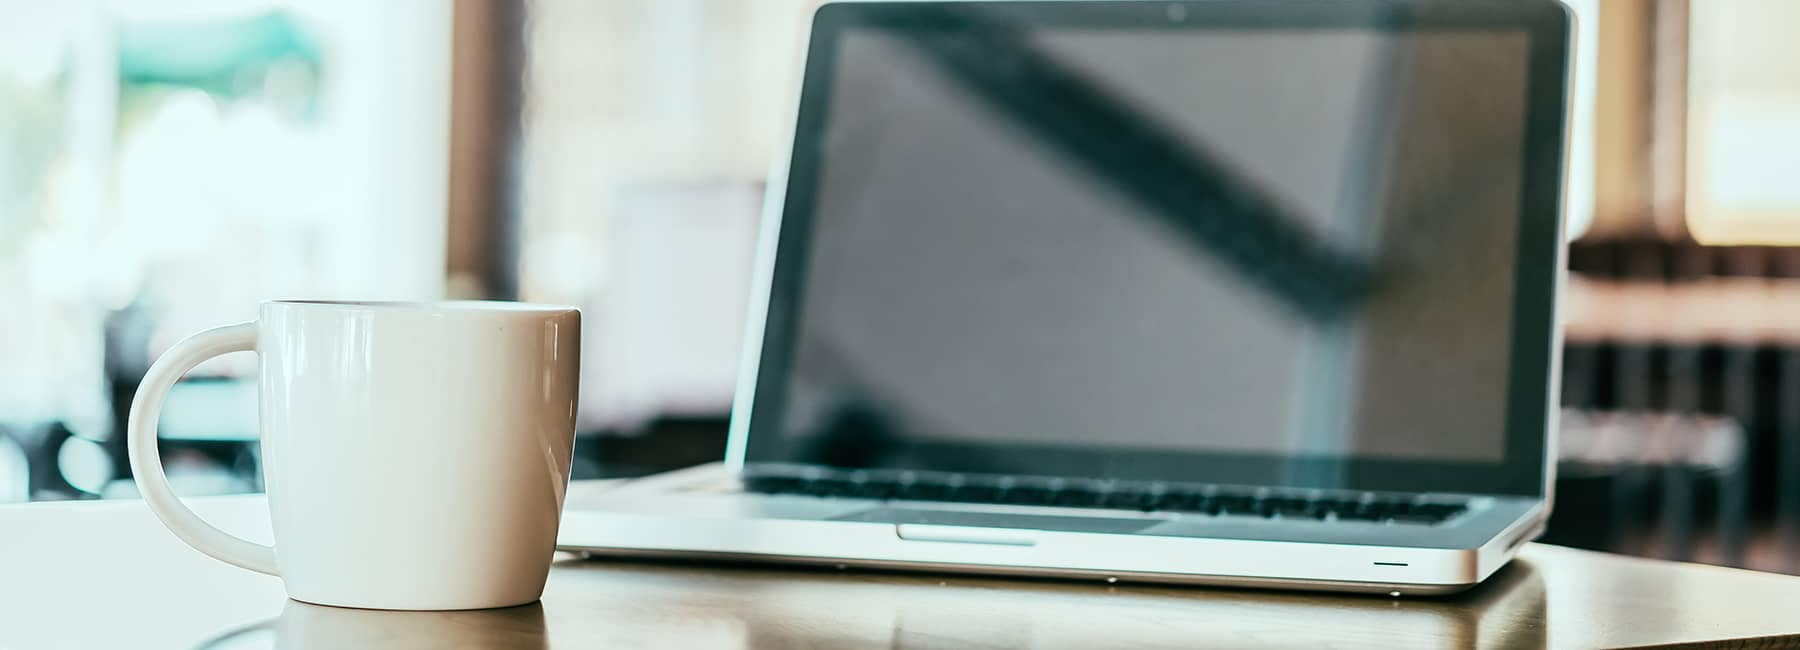 coffee cup and latoptop